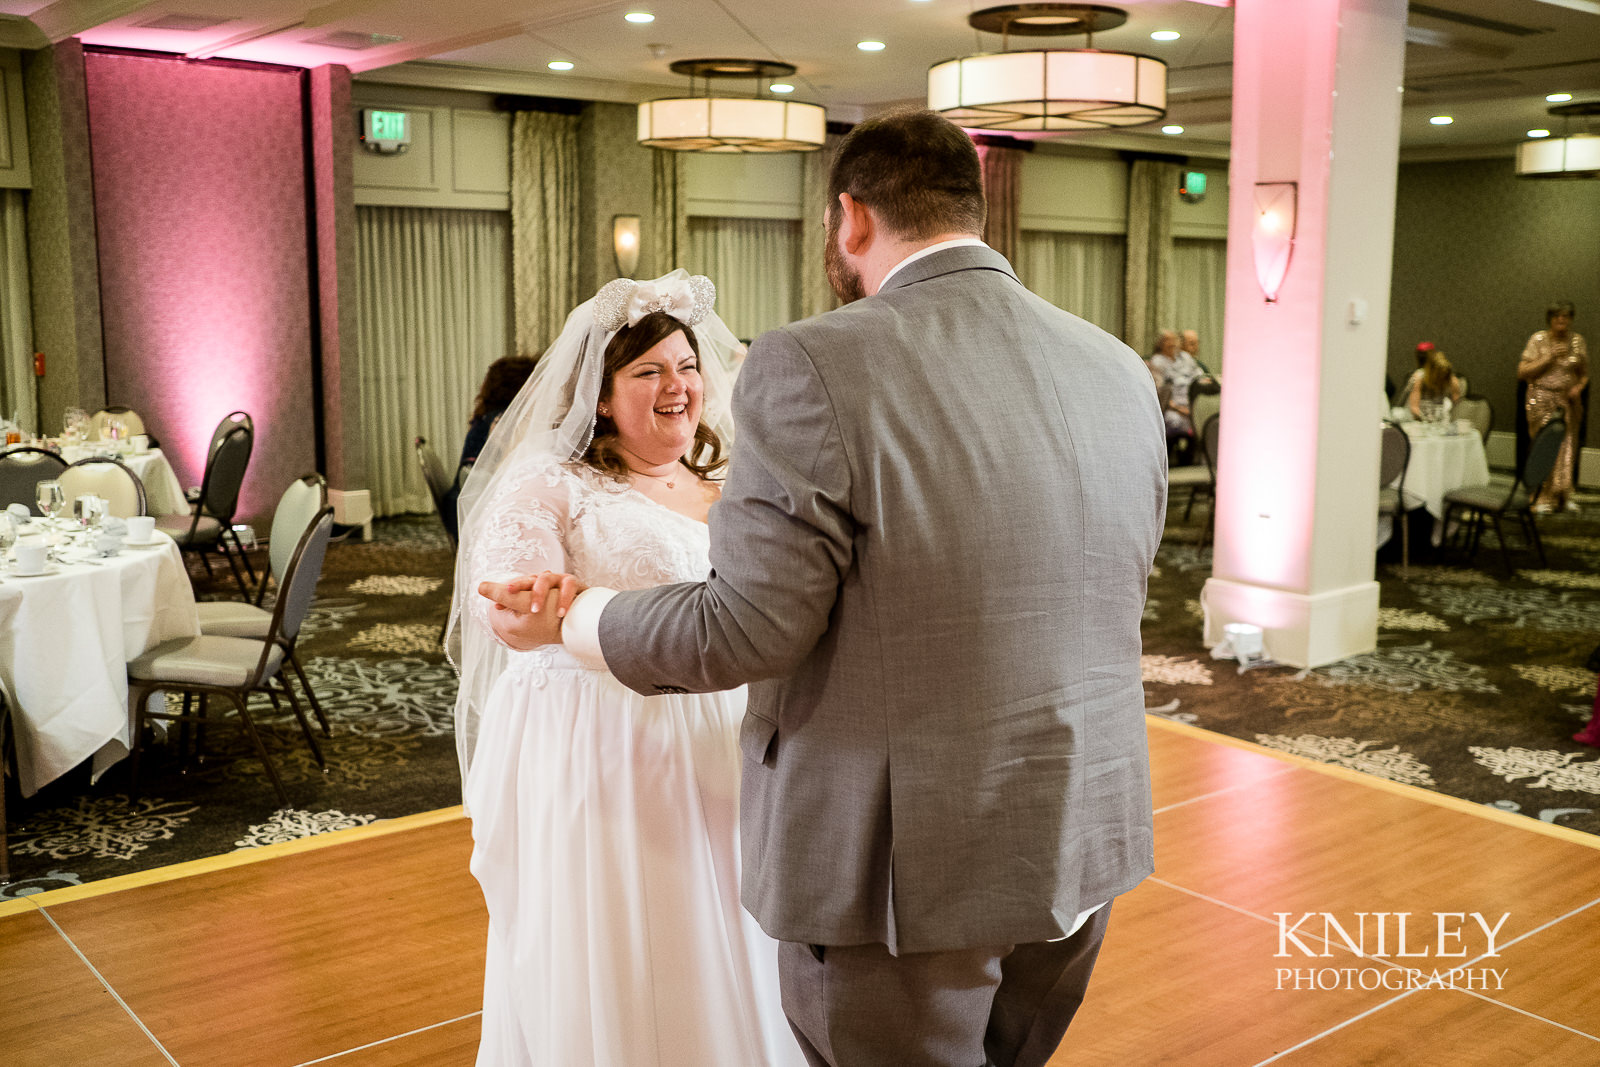 094 - Woodcliff Hotel - Rochester NY wedding photo - Kniley Photography.jpg